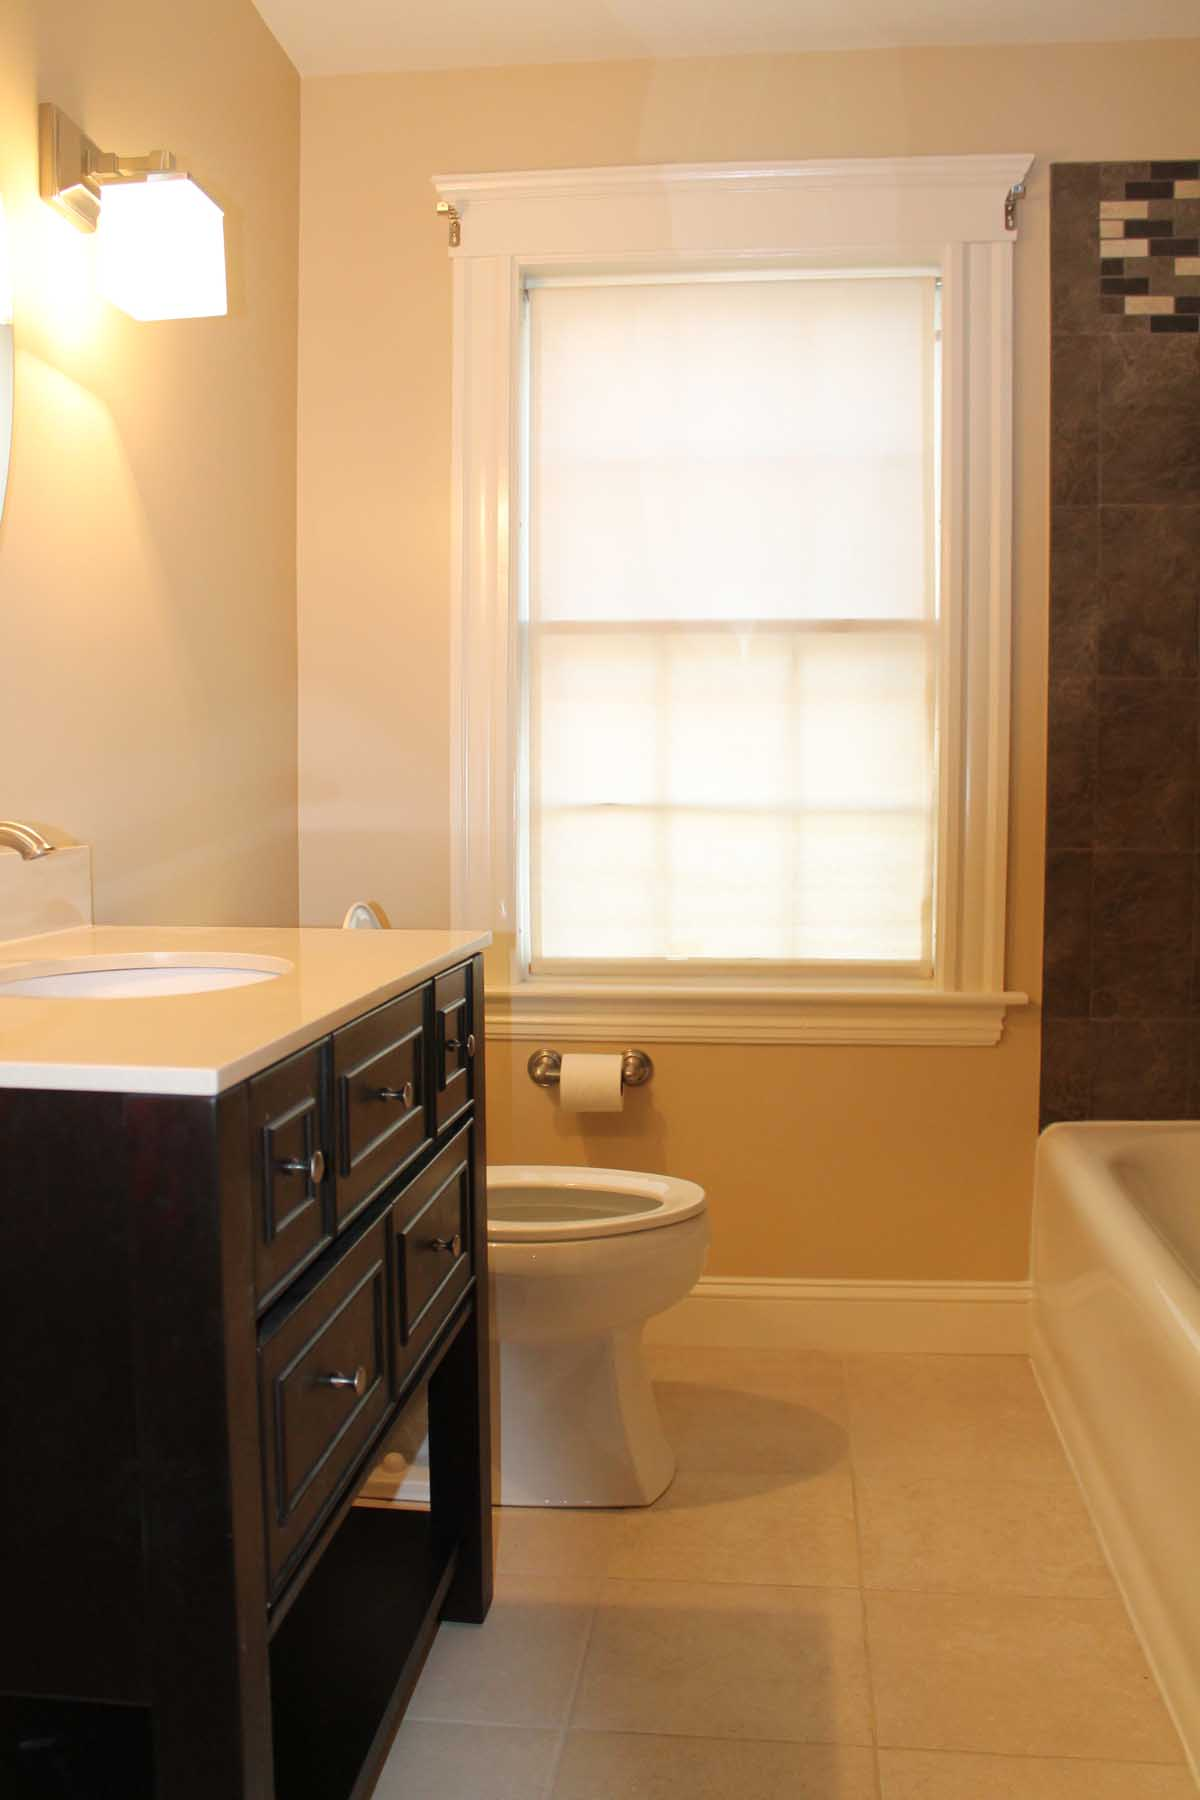 Wayne Rd. Needham - sink, toilet and floor tile details after bathroom renovation